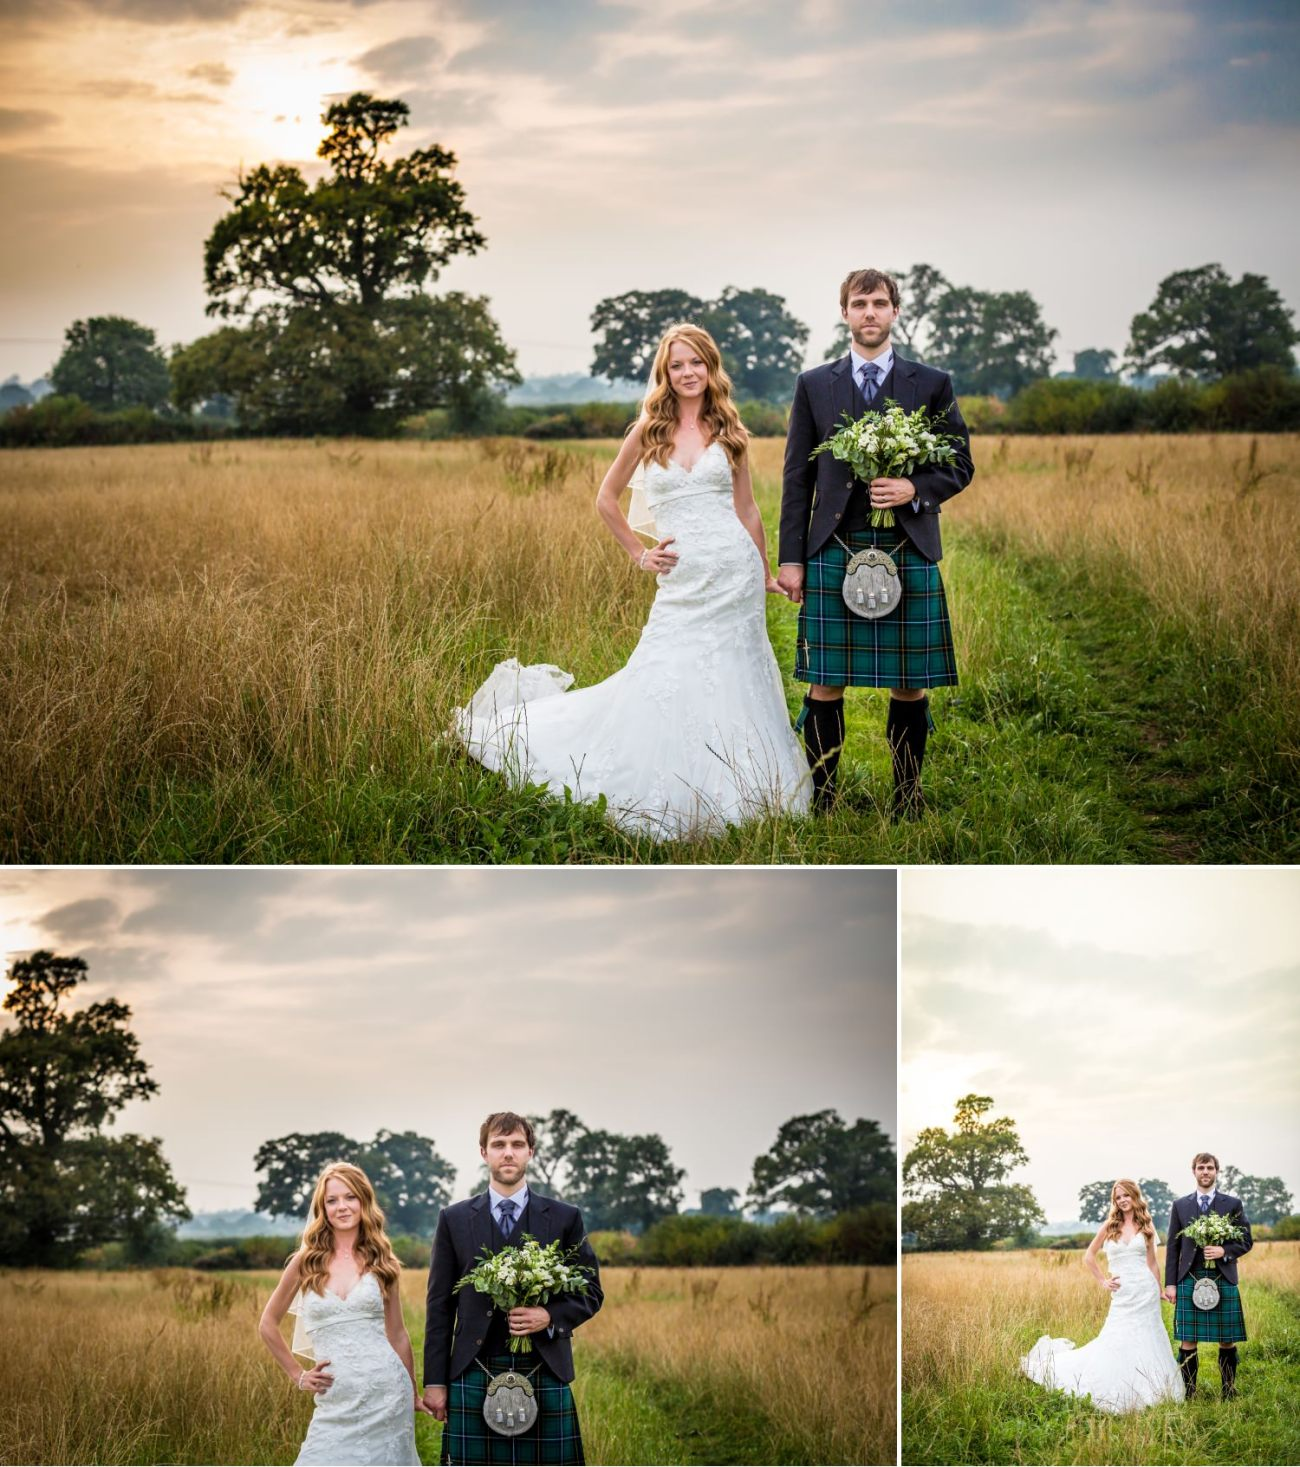 Wedding sunset pictures at Cheshire venue, Hundred House Hotel